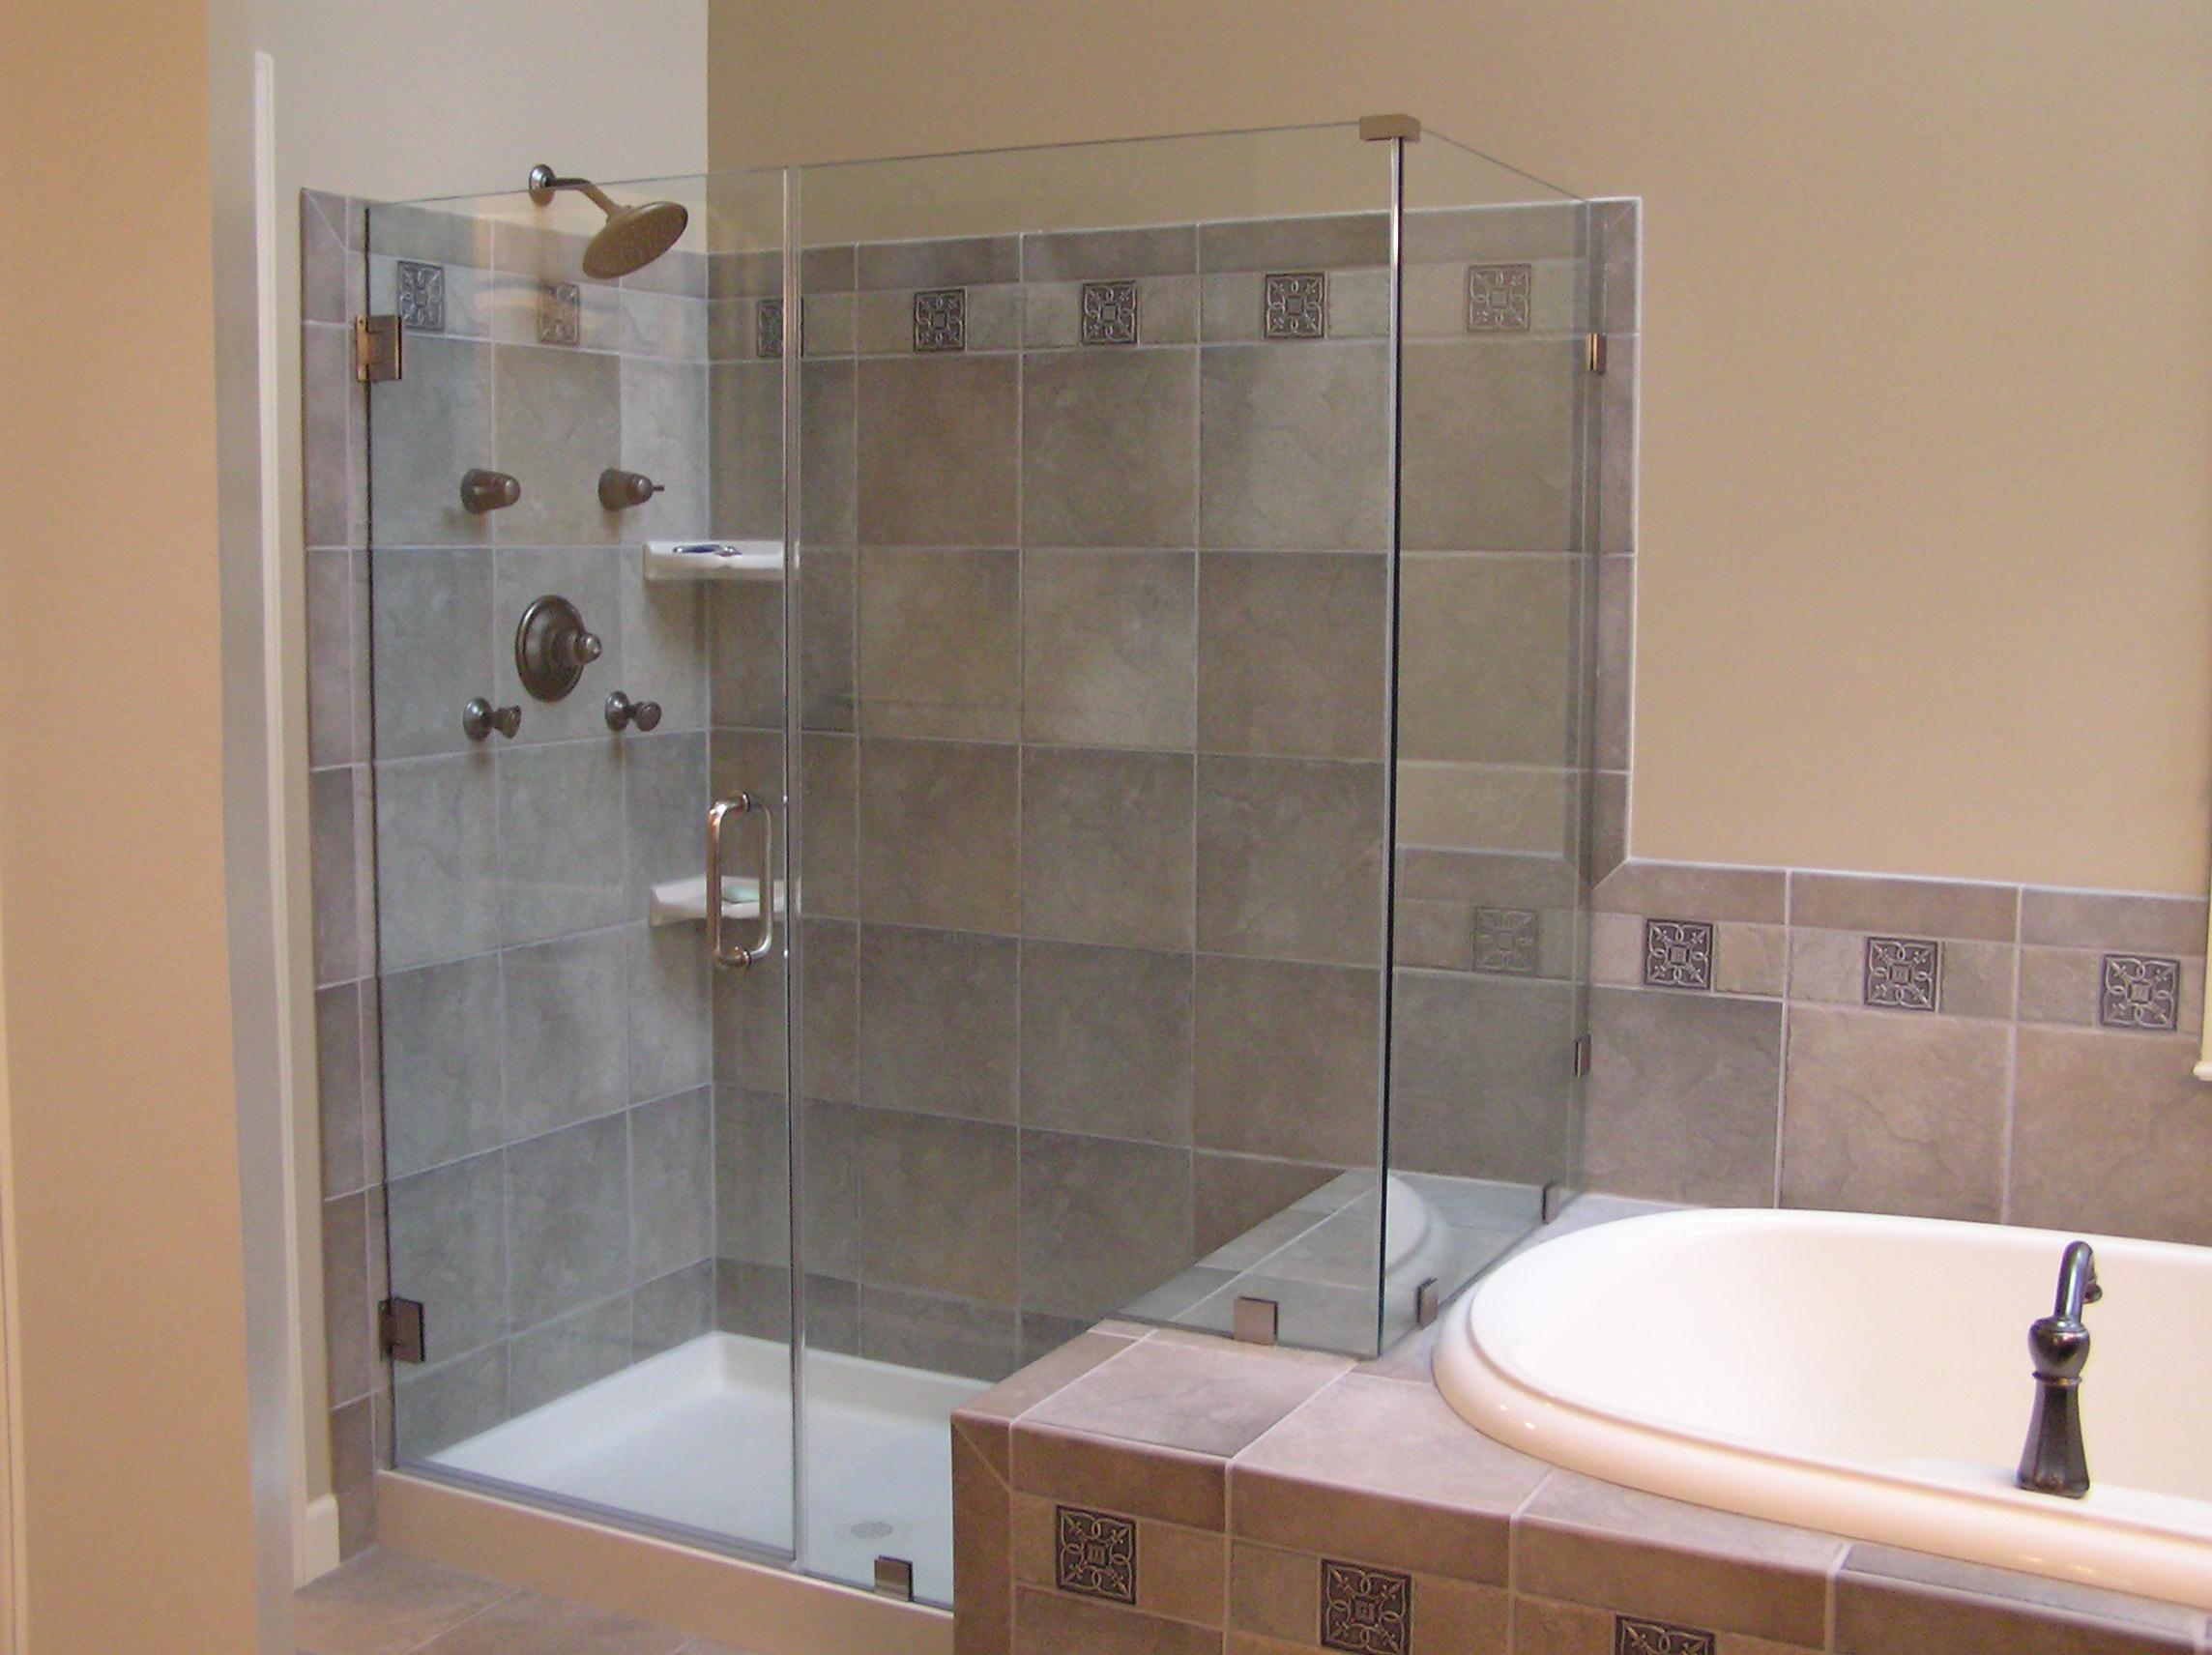 Shower Renovation bathroom remodel delaware - home improvement contractors